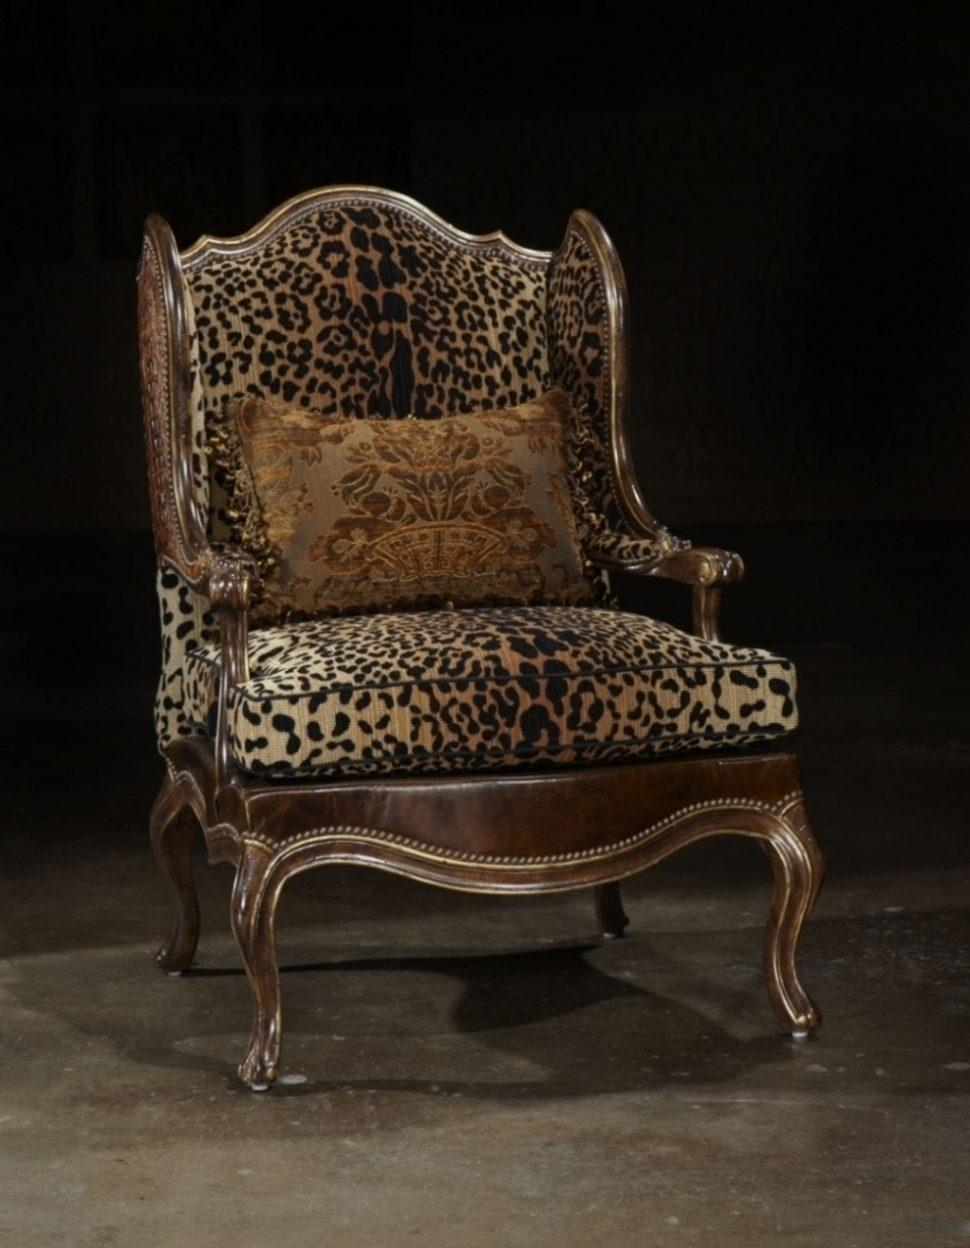 Sofas Center : Animal Print Sofa Amazing Leopard Accent Chair Within Animal Print Sofas (Image 17 of 20)